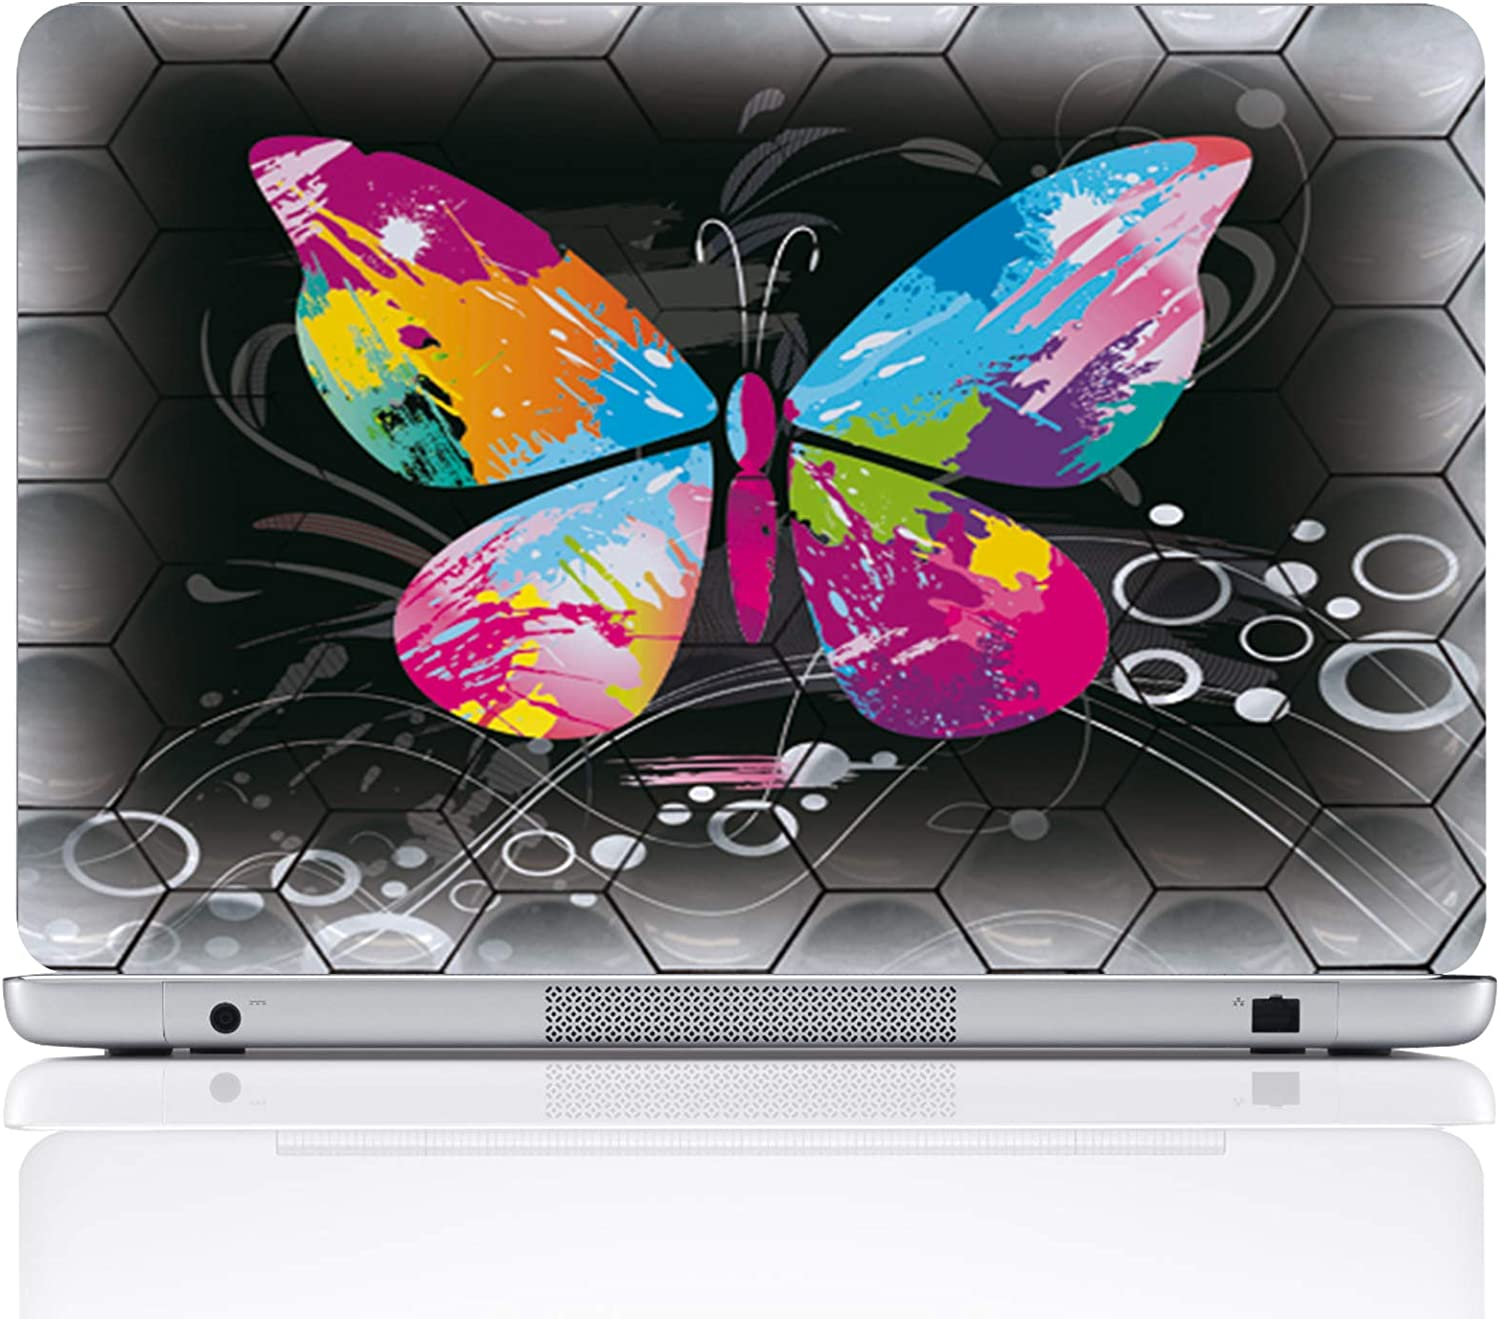 Meffort Inc 15 15.6 Inch Laptop Notebook Skin Sticker Cover Art Decal (Included 2 Wrist pad) - Big Colorful Butterfly